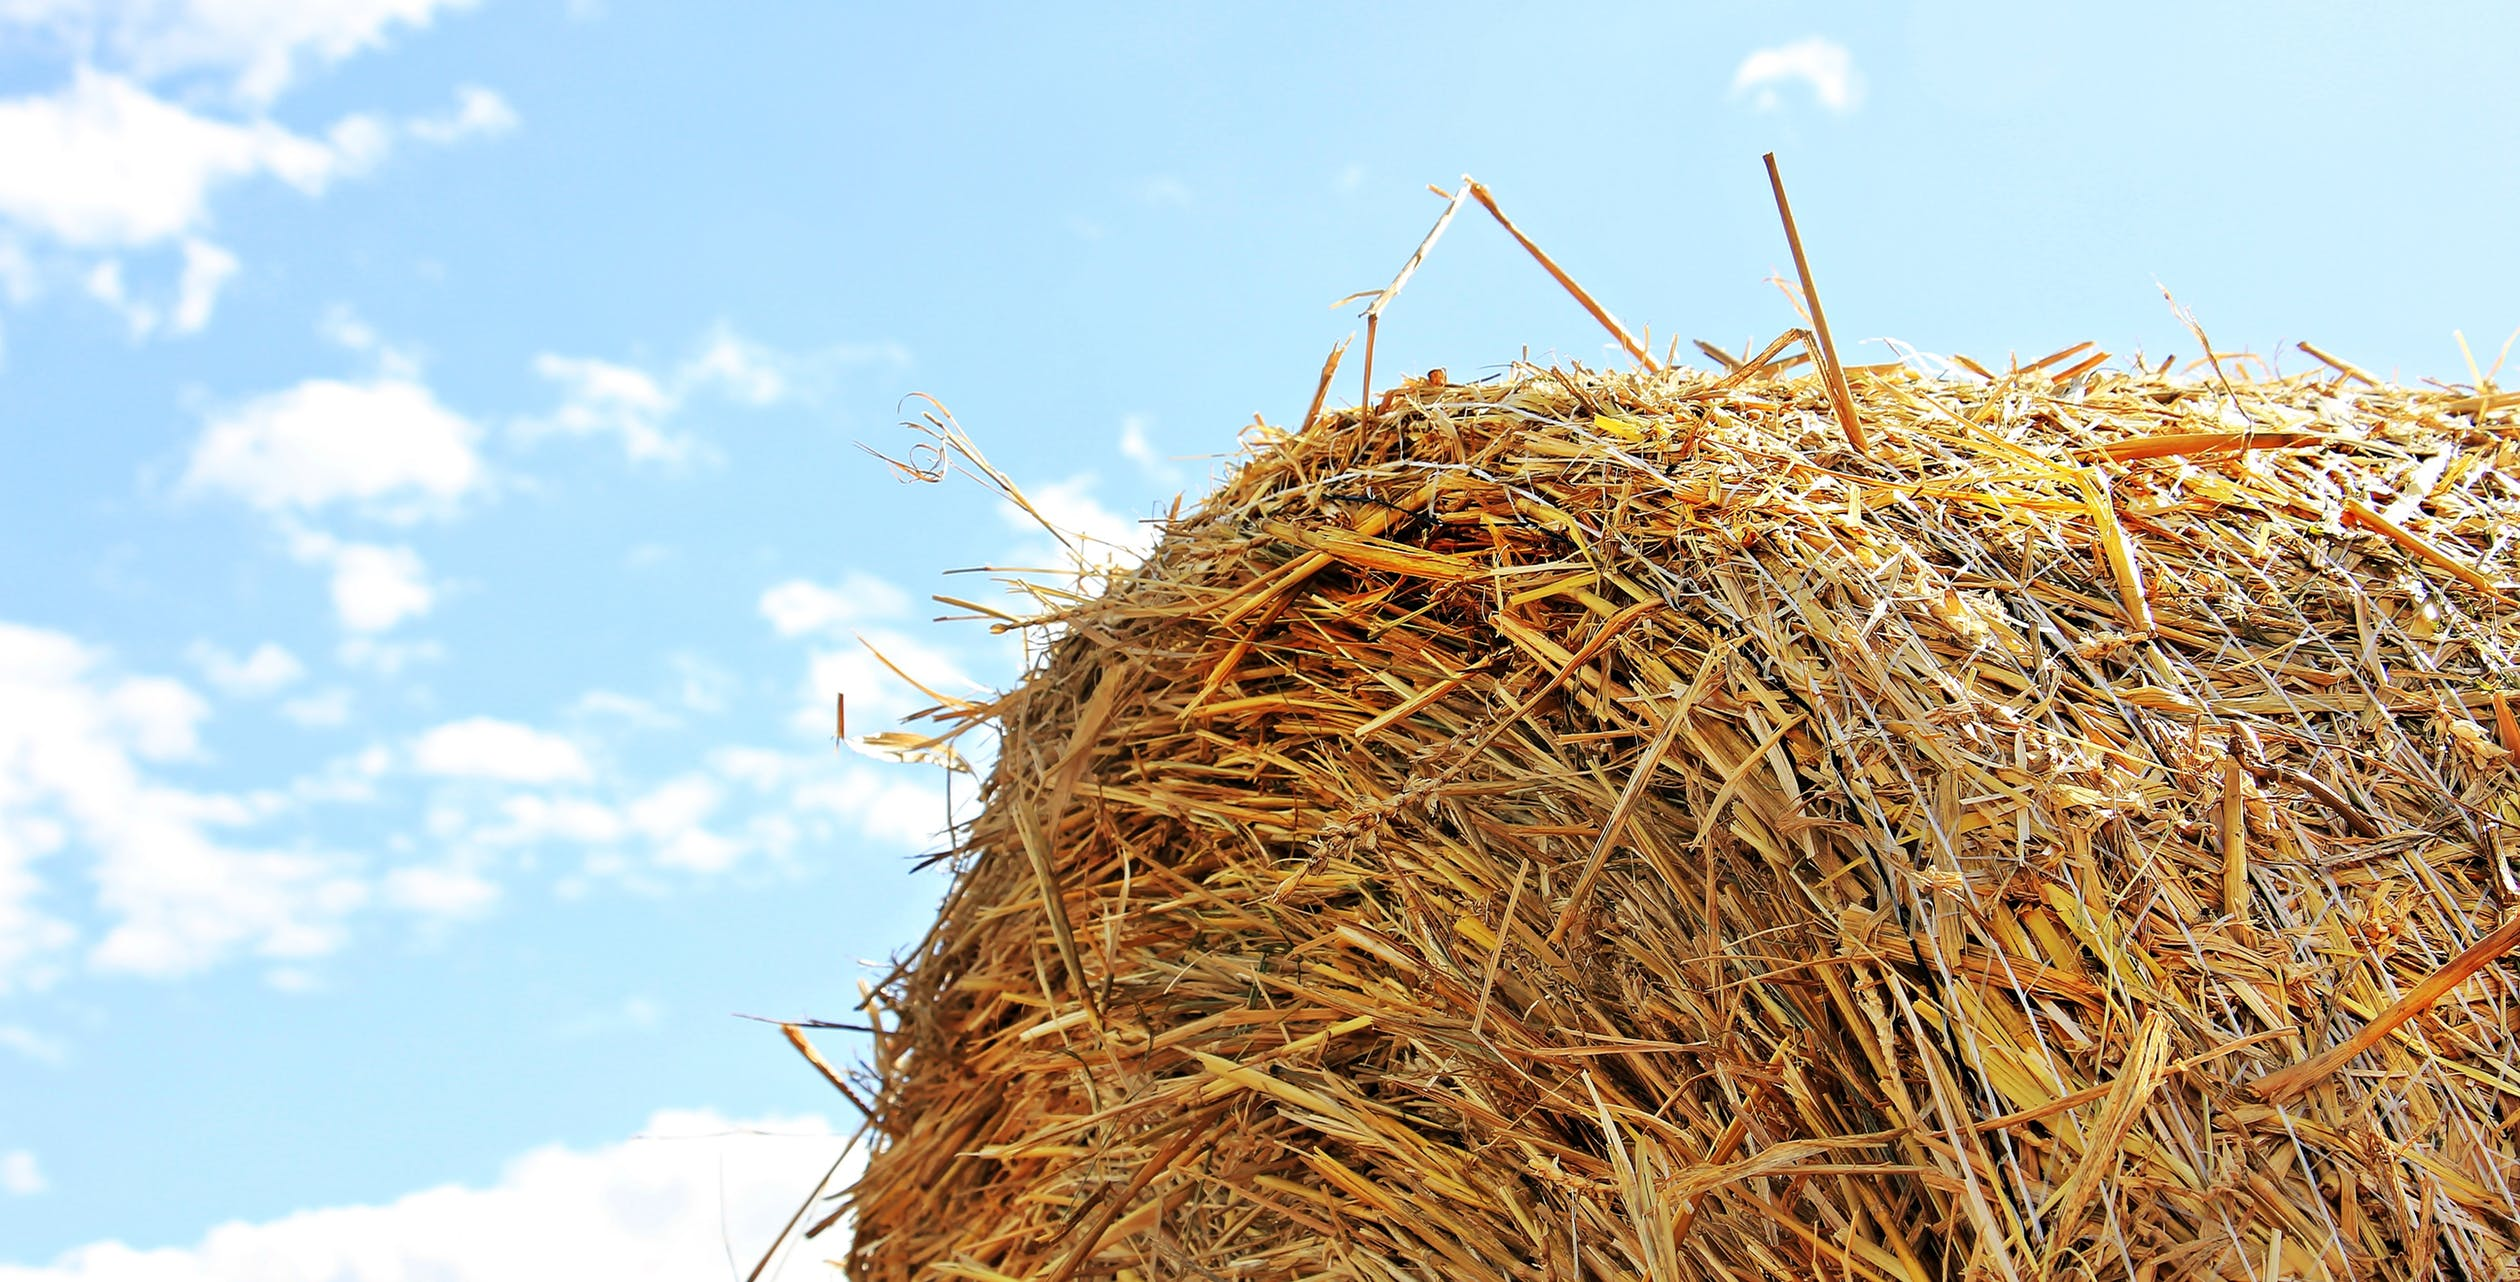 Close-up of a hay bale set against blue skies